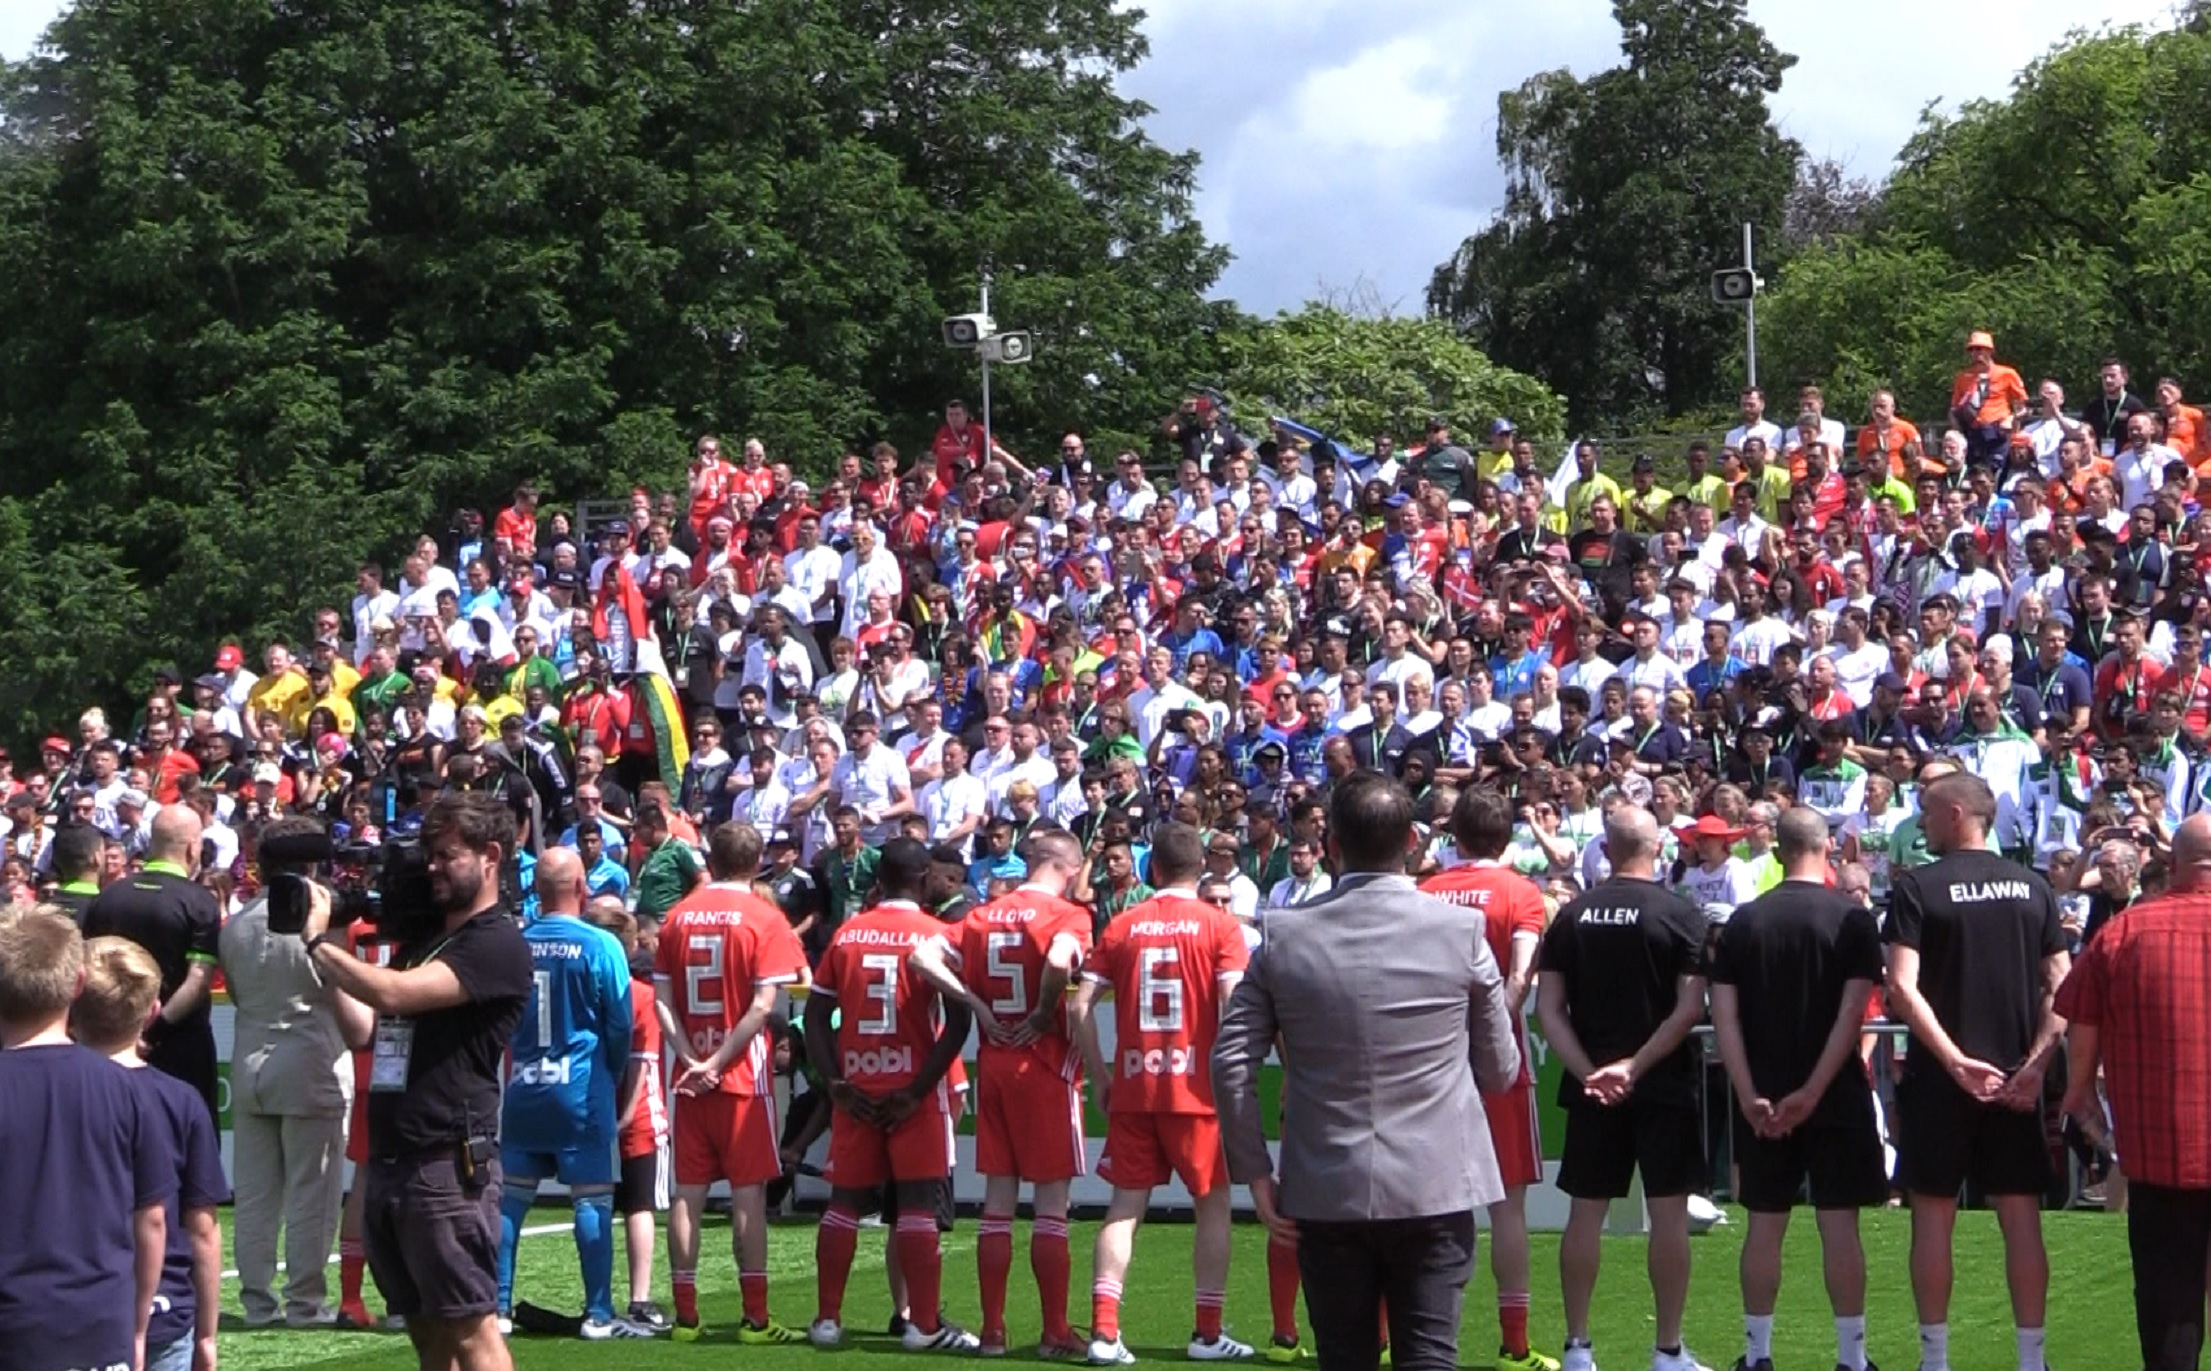 Wales and Denmark line up for the national anthems ahead of the opening men's game at the Homeless World Cup